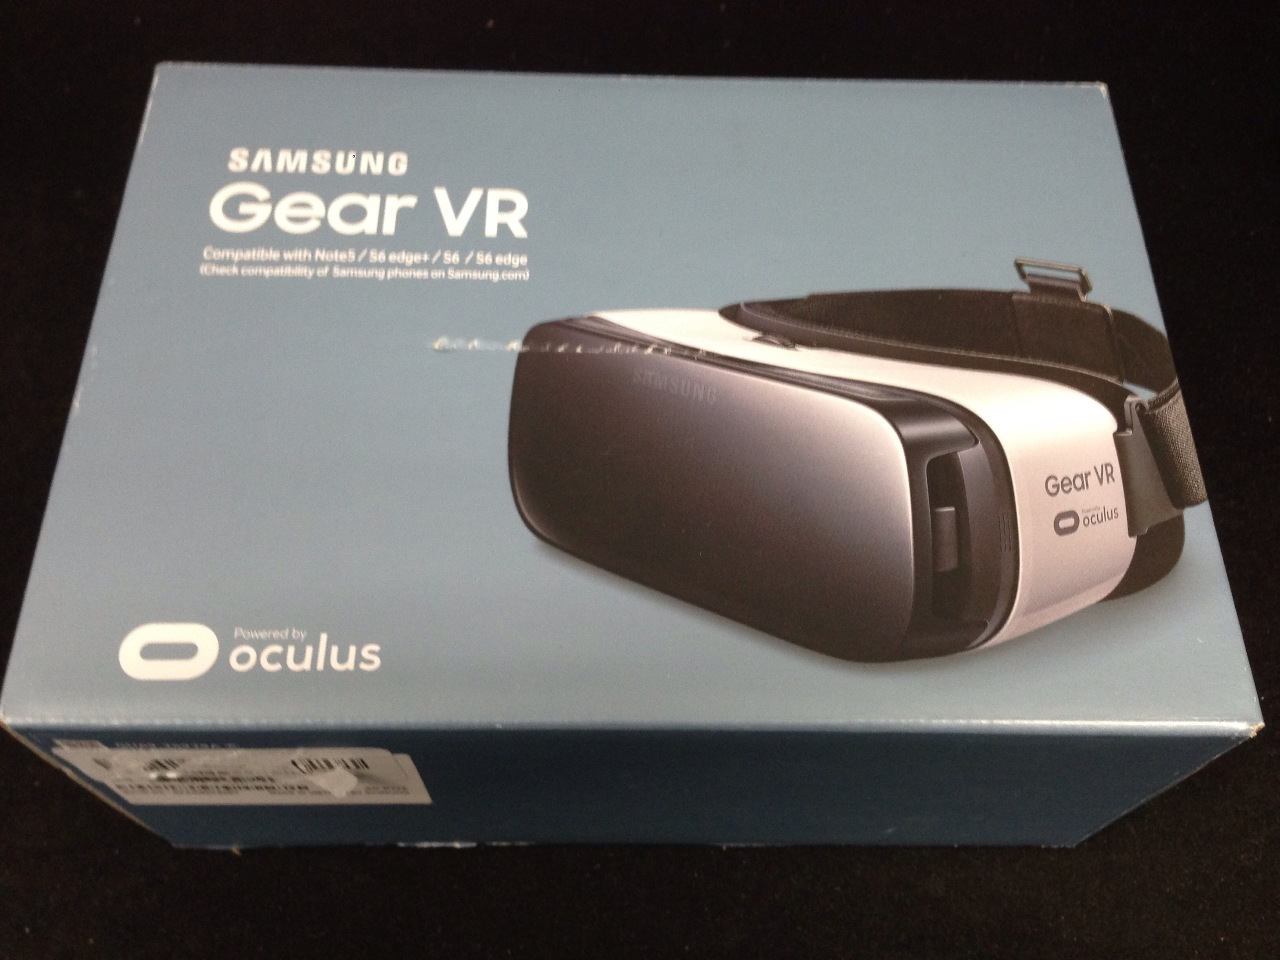 Samsung Gear VR - Virtual Reality Headset - Note 5 / S6 edge  / S6 / S6 edge